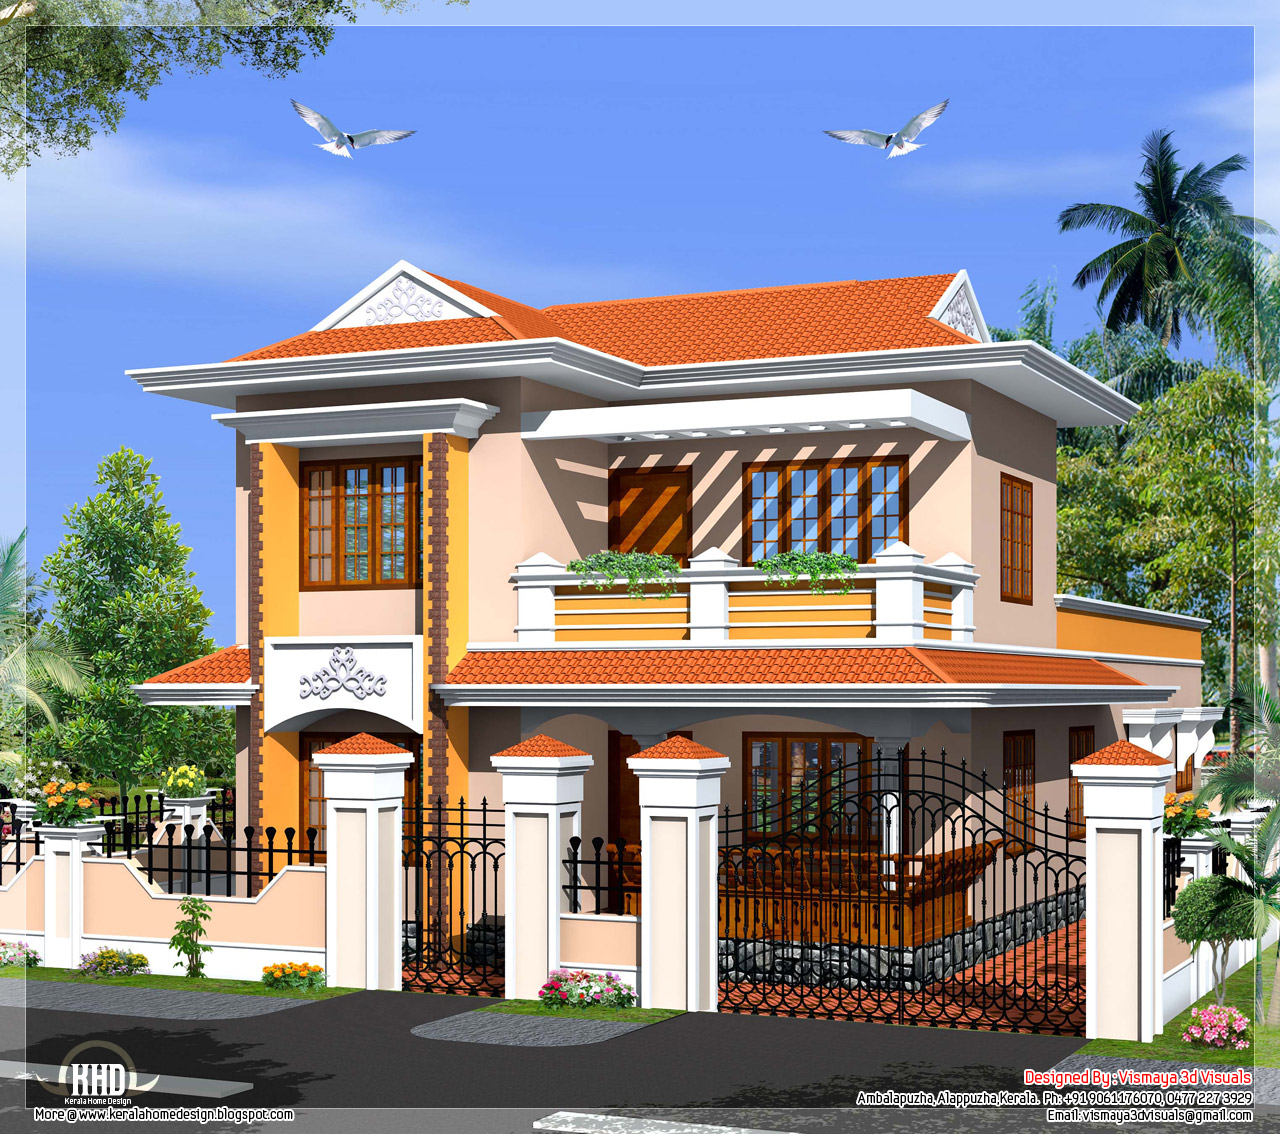 Kerala model villa in 2110 in square feet house design plans 3d model house design